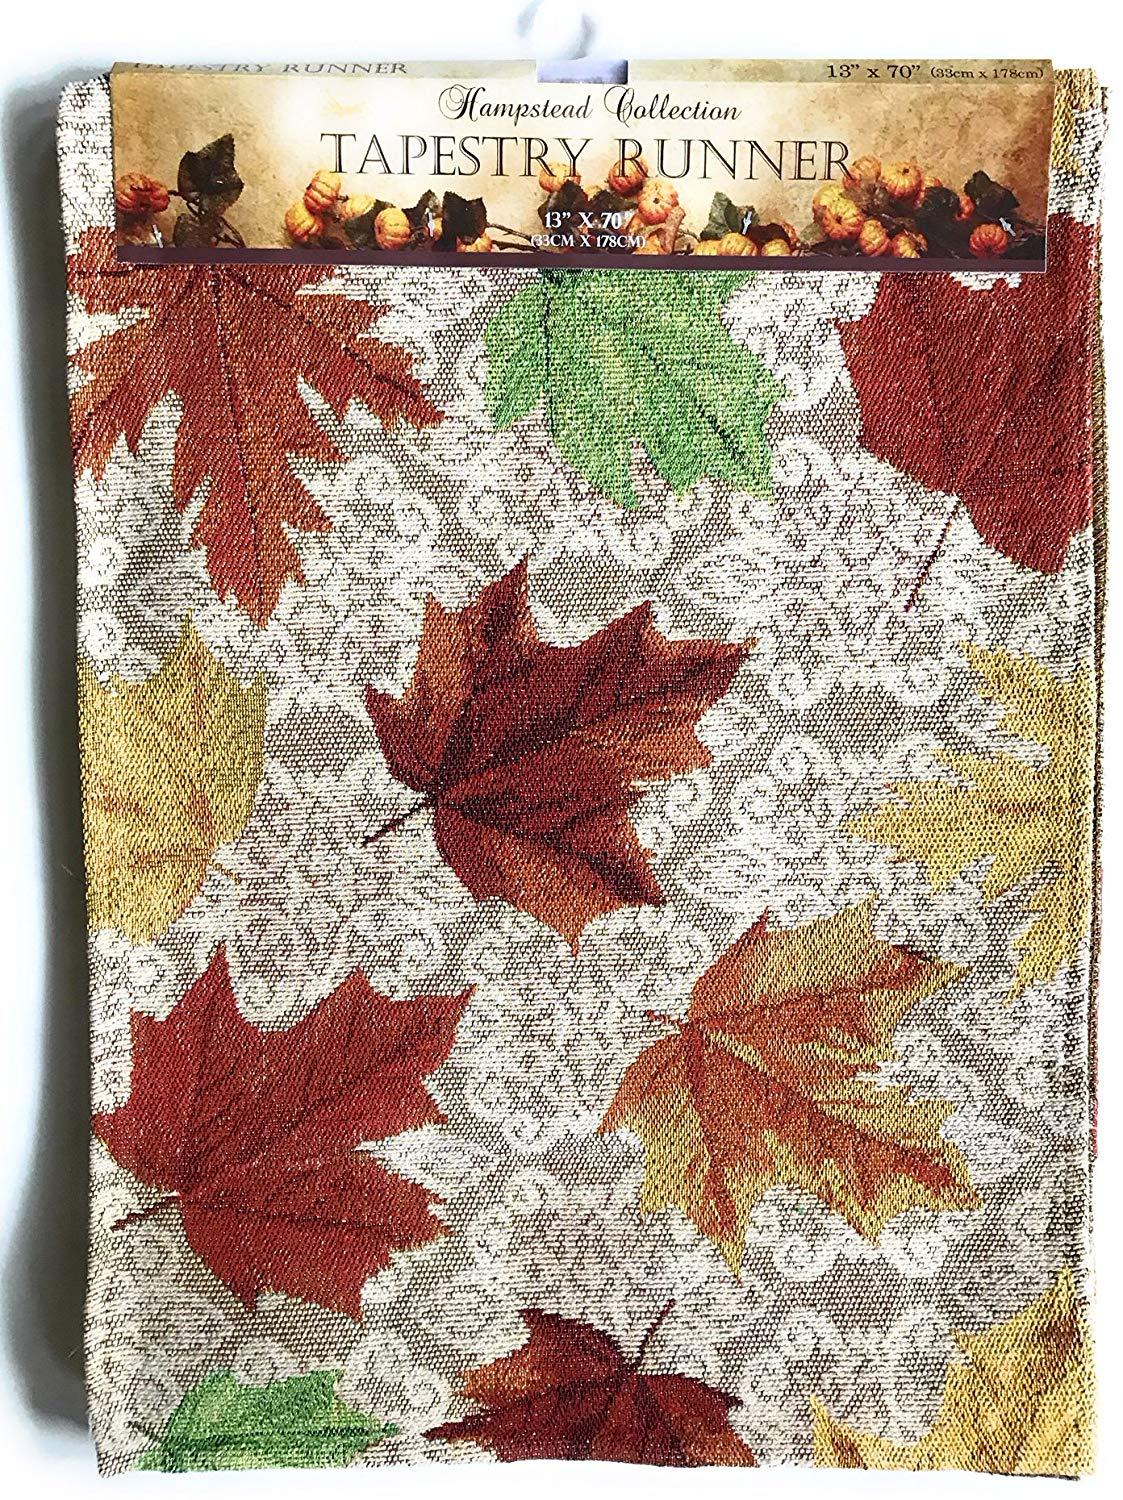 Casual Cotton Fall Table Runners 72 Inch x 13 Twisted Anchor Trading Co Fall Table Runner Tapestry Style with Sparkle Thread Harvest Pumpkin Runner